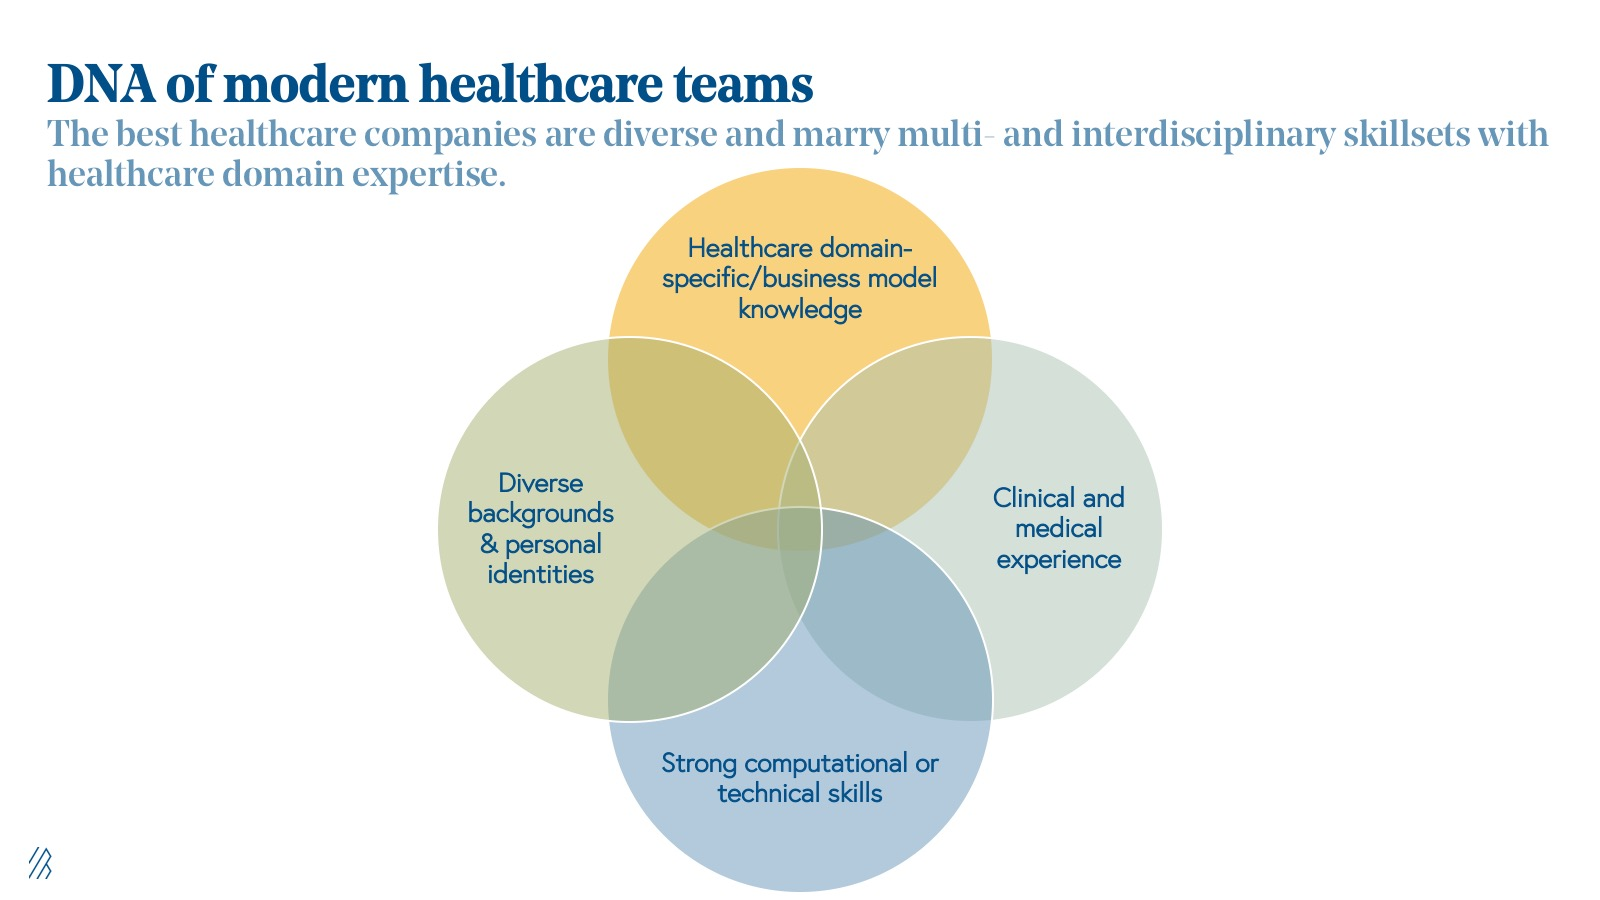 DNA of a modern healthcare team